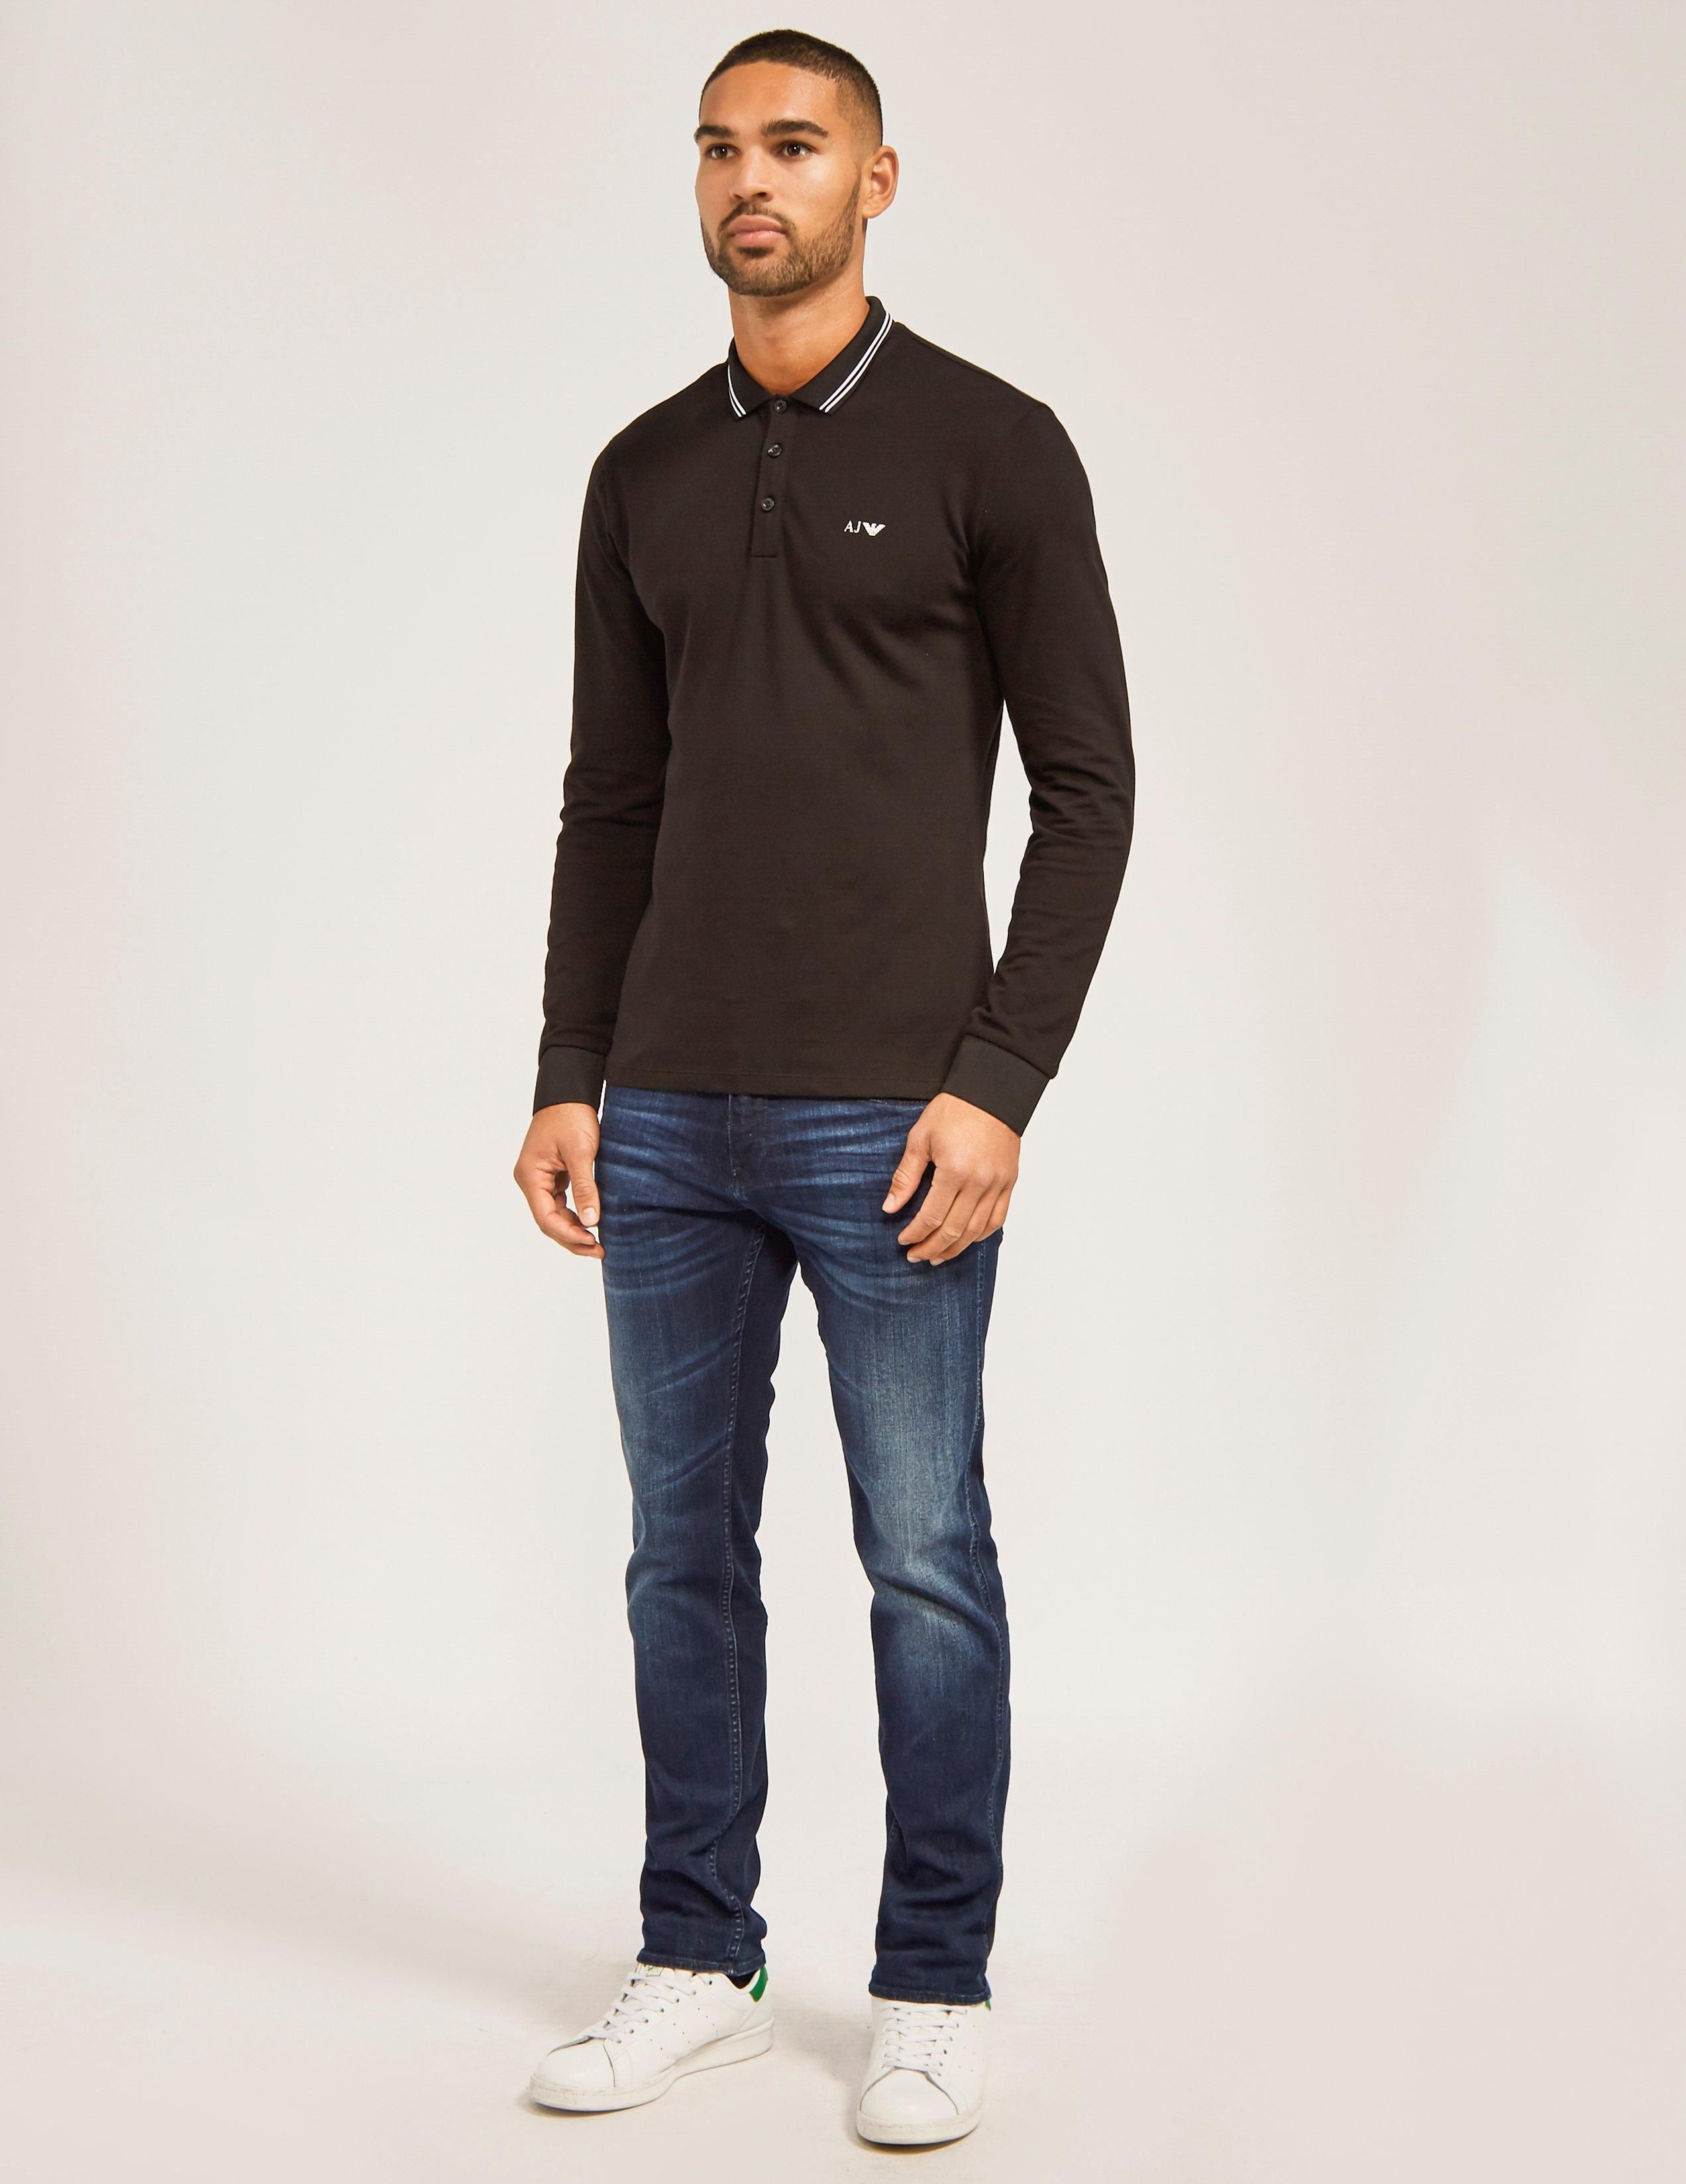 84f0f9dc Armani Jeans Black Modern Fit Long Sleeve Polo Shirt for men